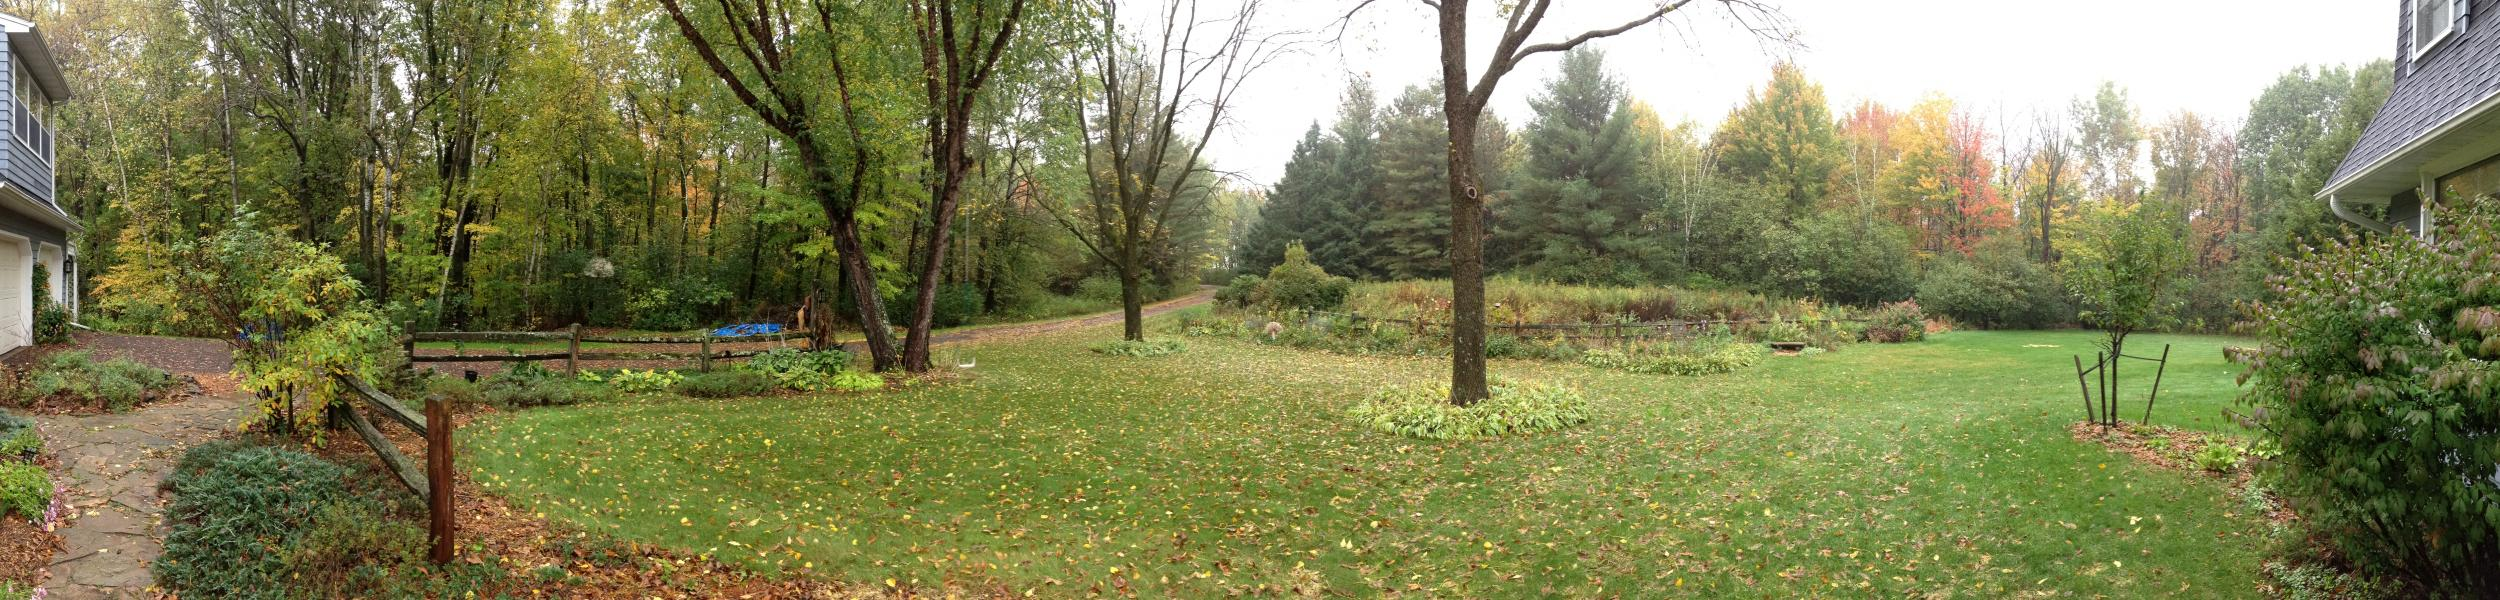 Panorama of a yard in autumn